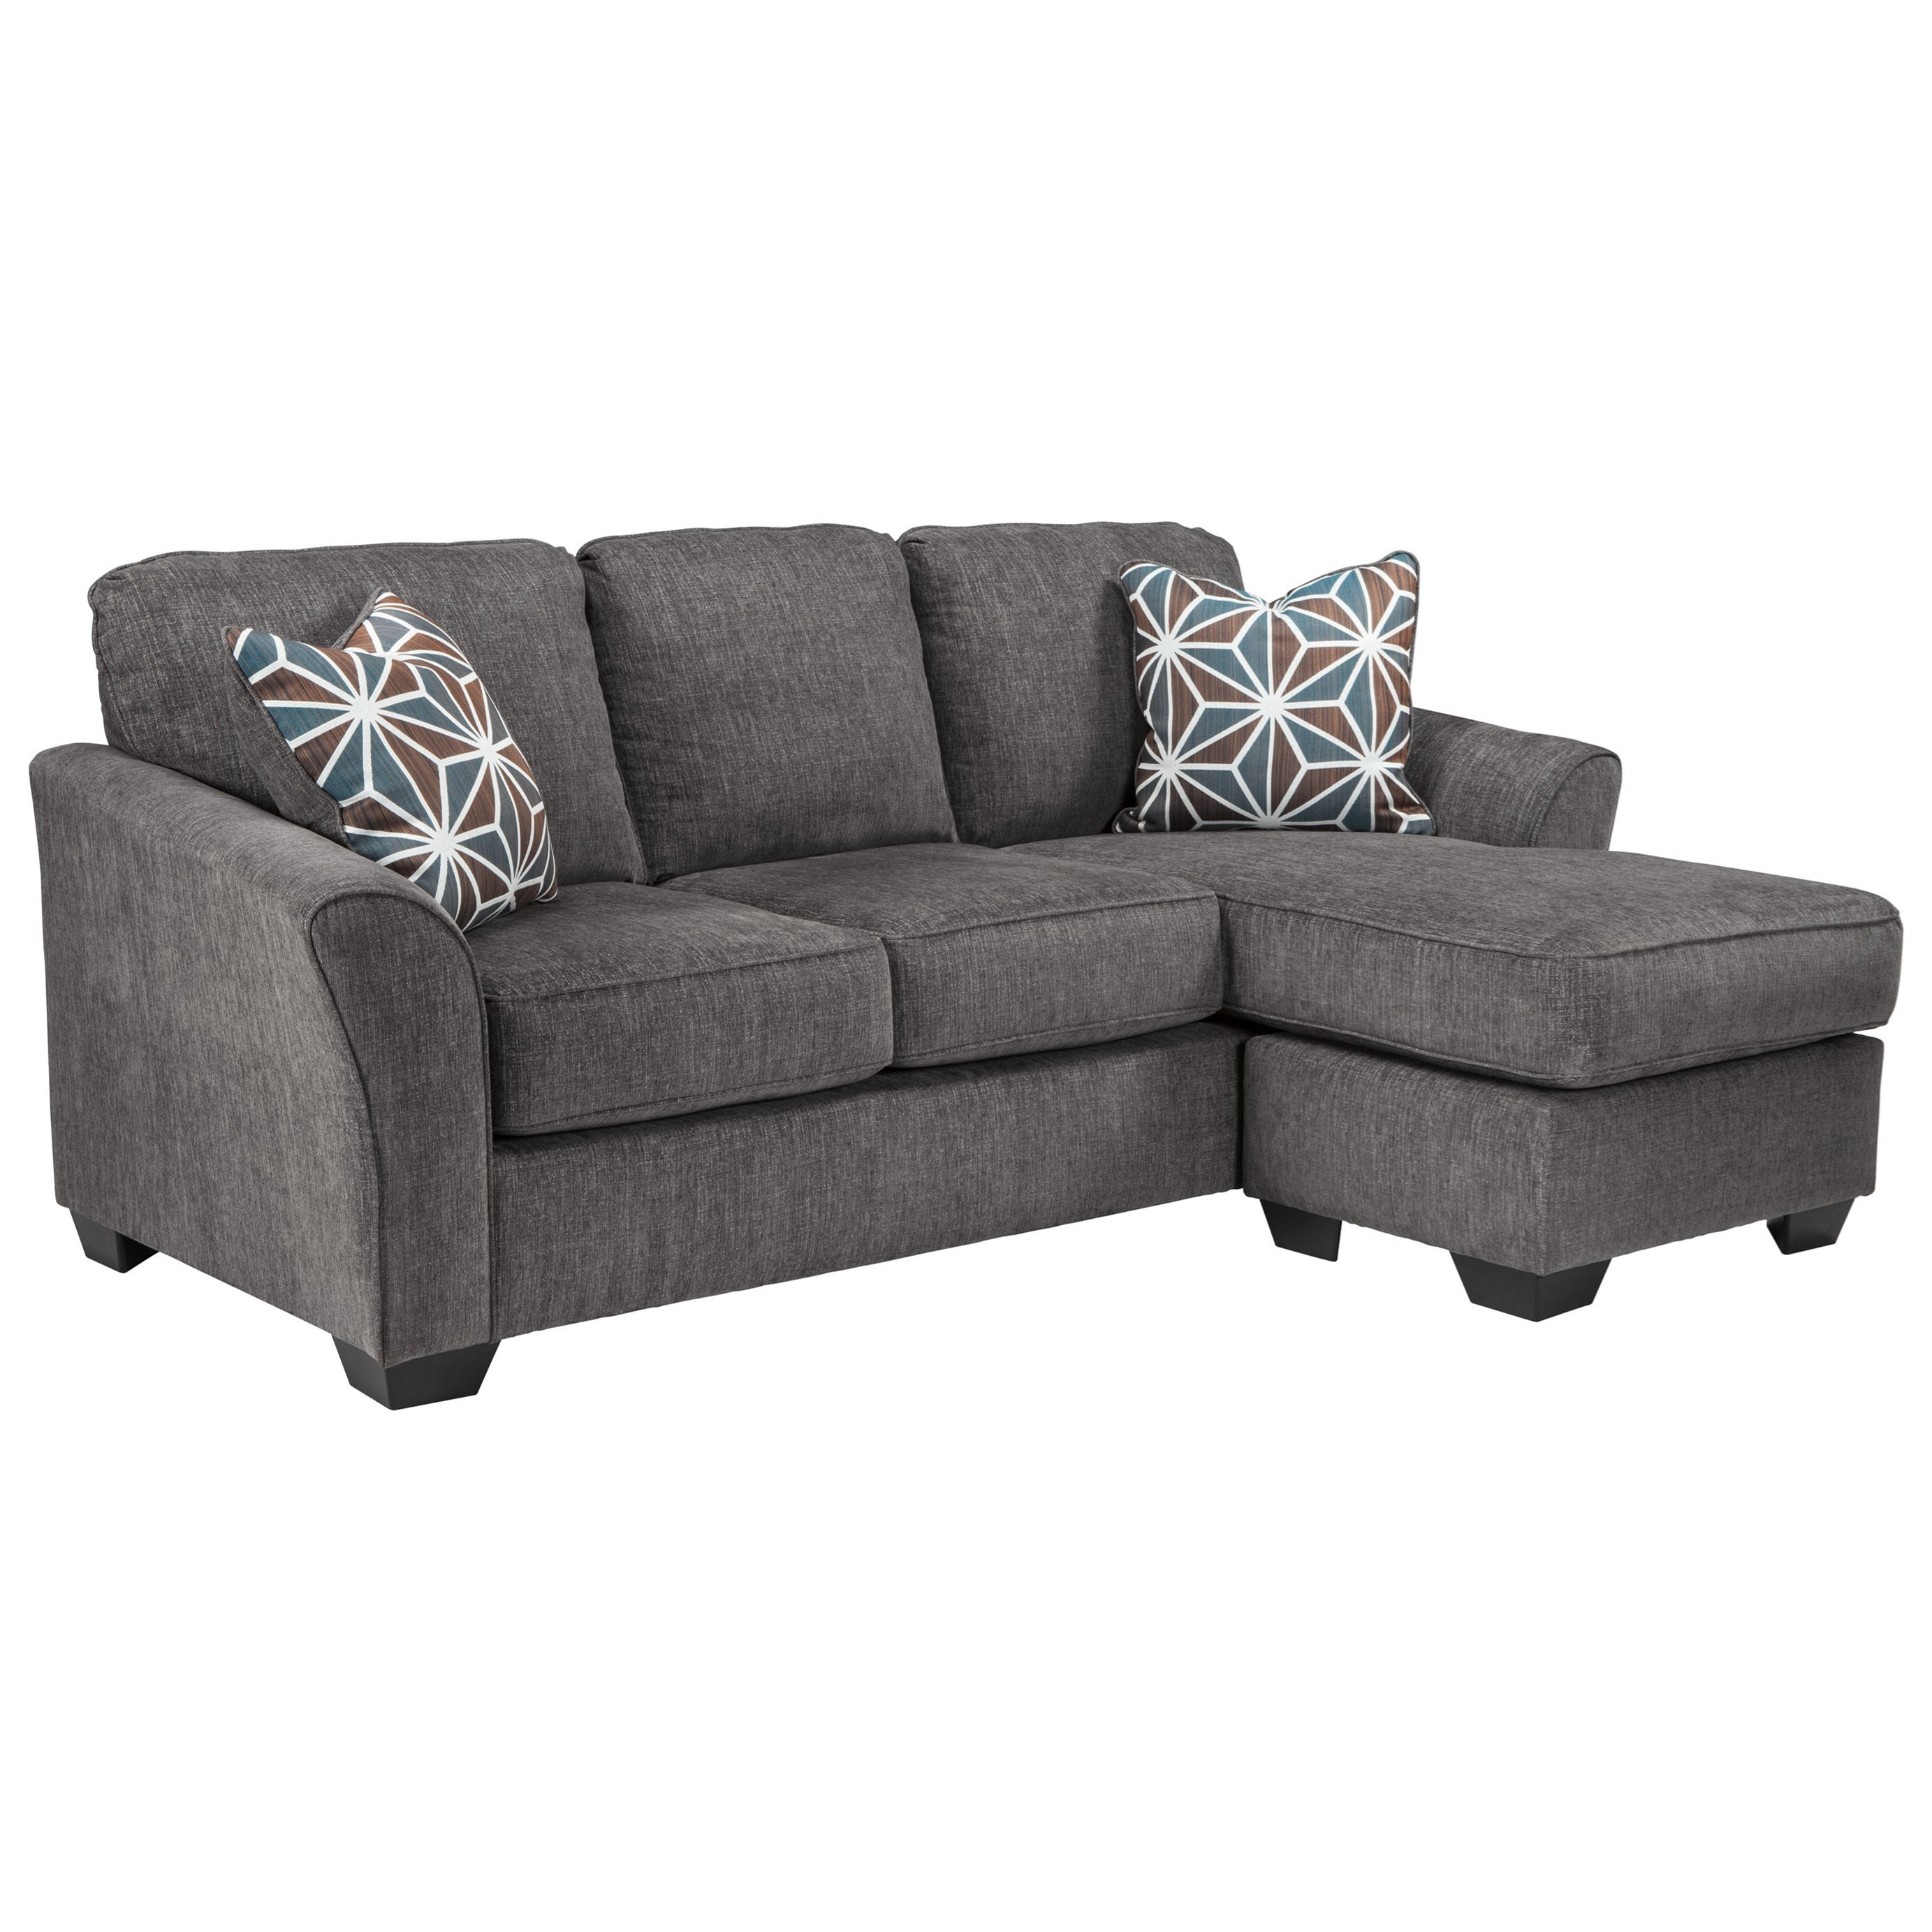 Brise Queen Sofa Chaise Sleeper by Benchcraft at Value City Furniture